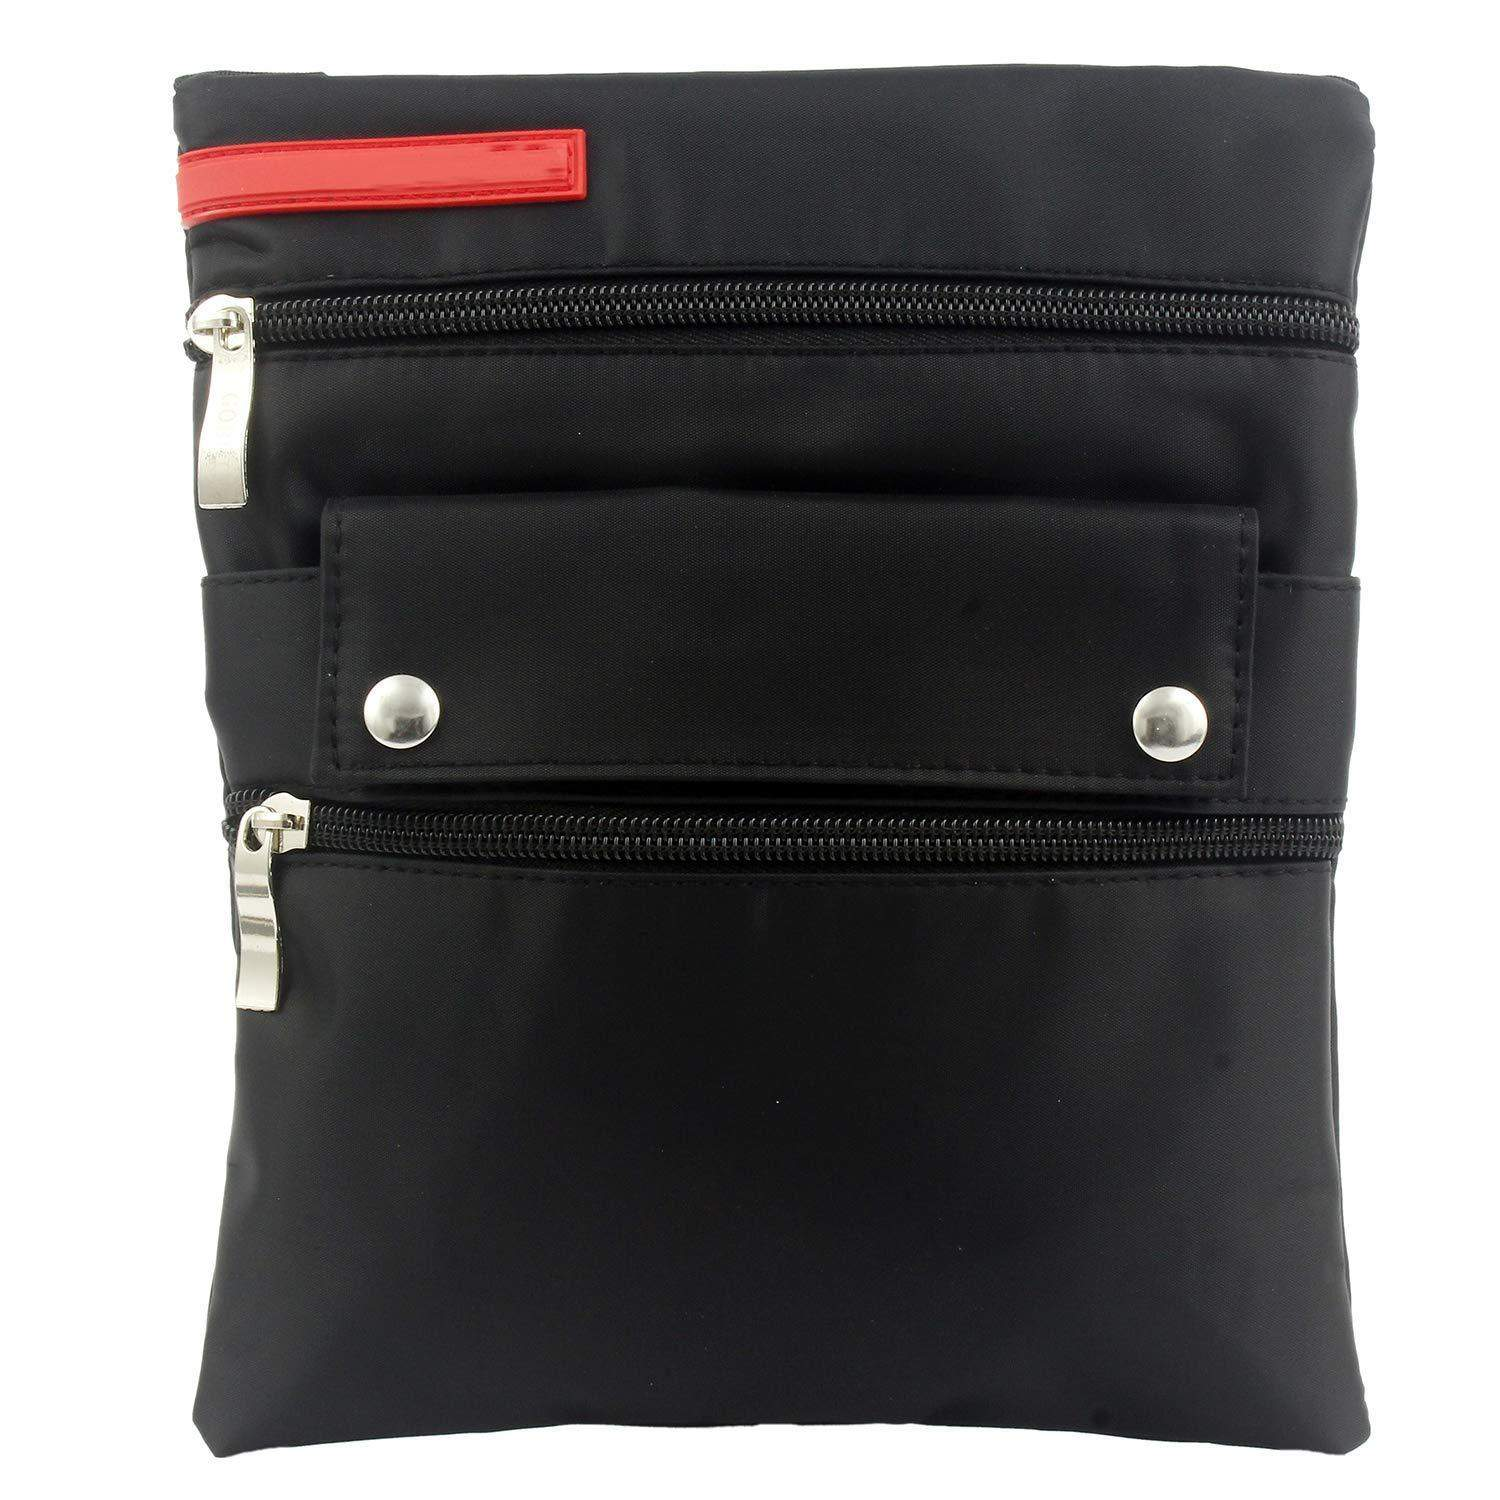 Stylish trendy Leather Sling Bag Side Bag (Black) - Bagaholics Gift